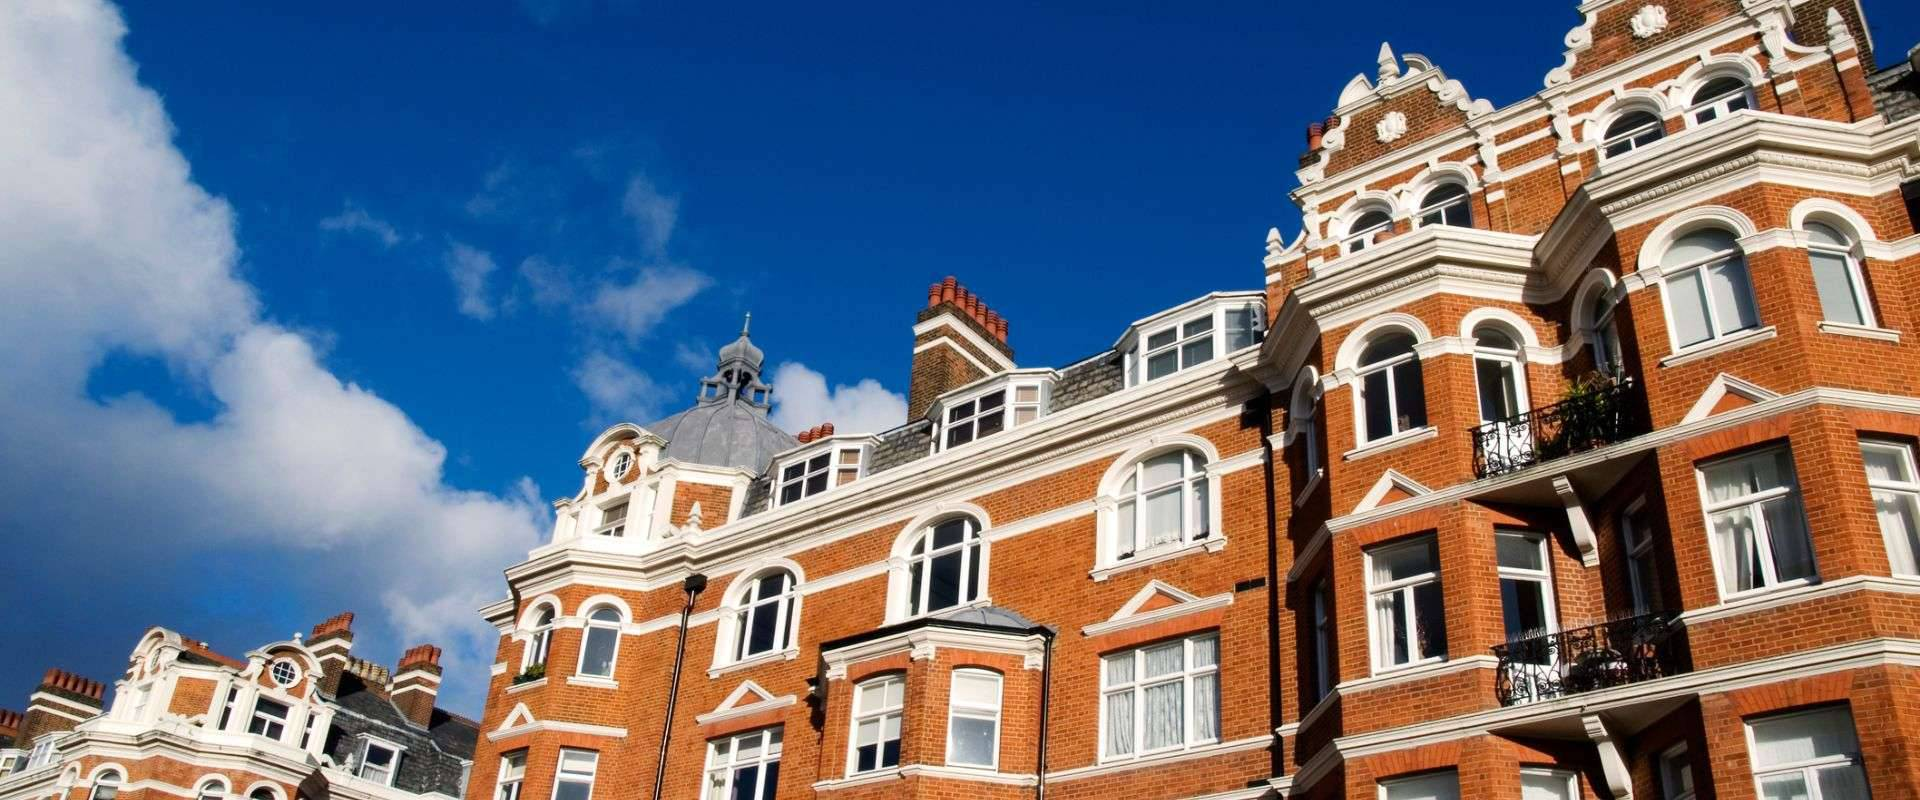 Accommodation nox hotels | west hampstead london